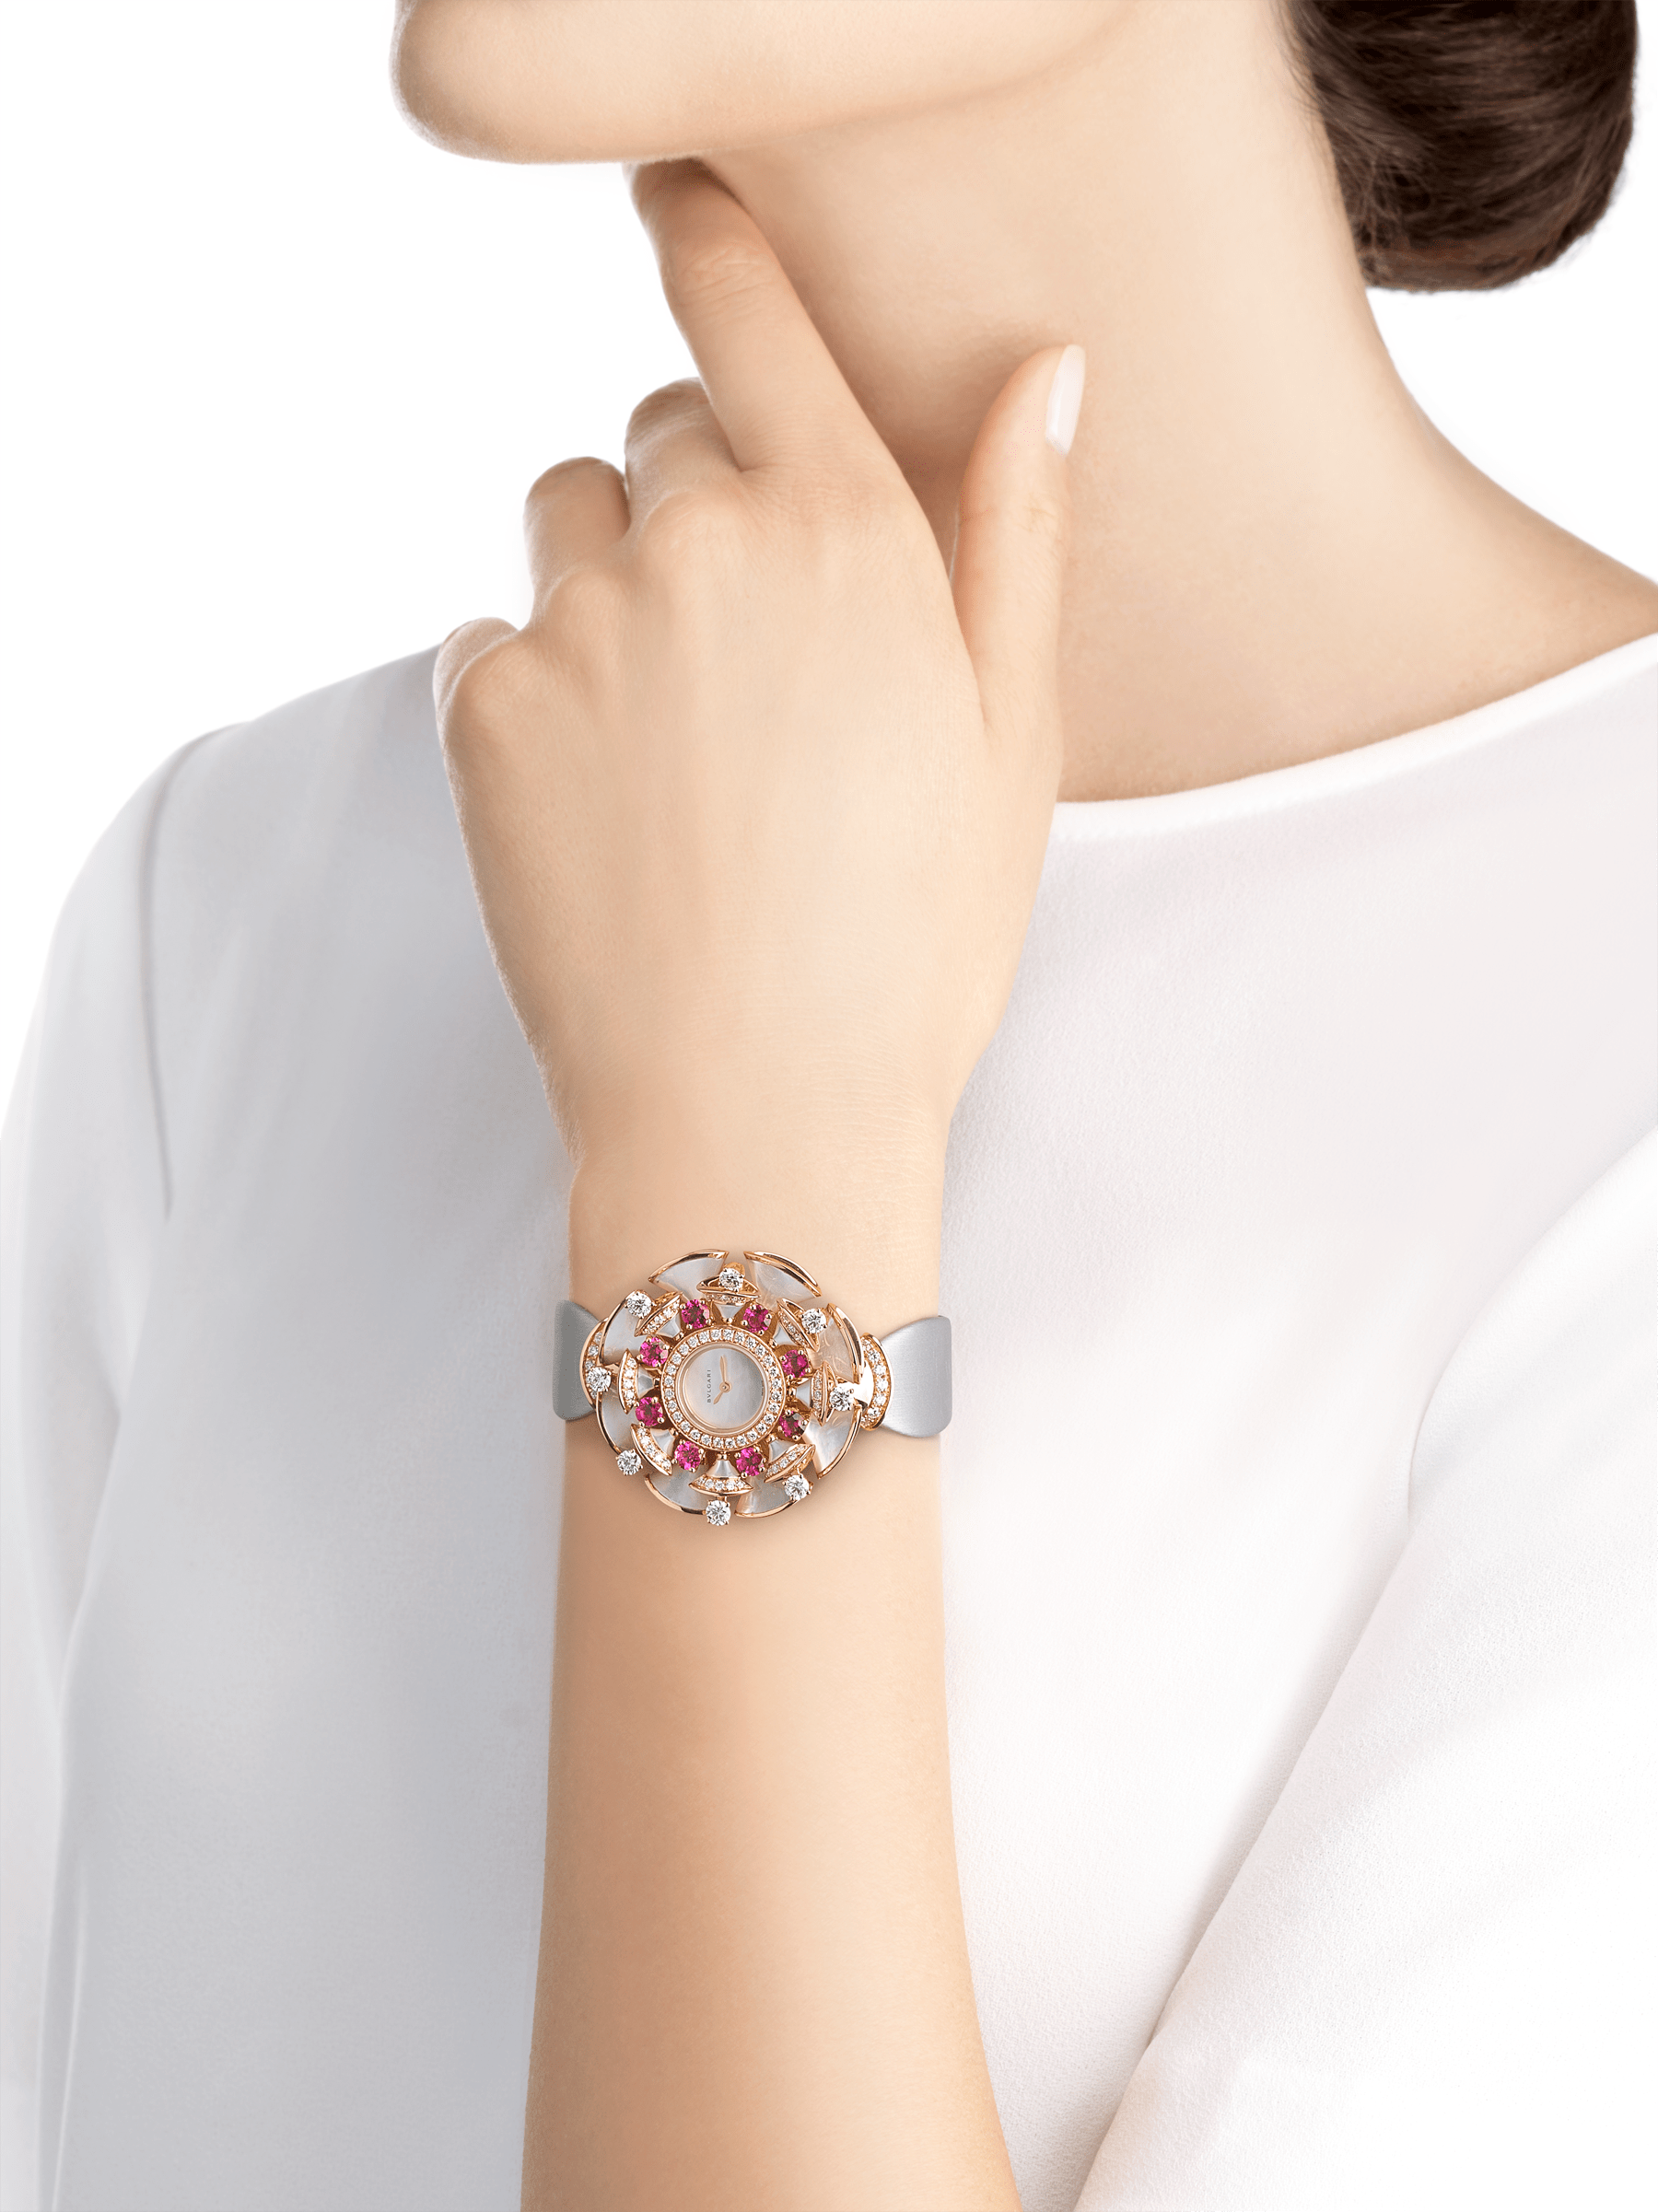 DIVAS' DREAM watch with 18 kt rose gold case set with brilliant and round-cut diamonds, round-cut rubellites and mother-of-pearl elements, white mother-of-pearl dial and grey satin bracelet 102218 image 3